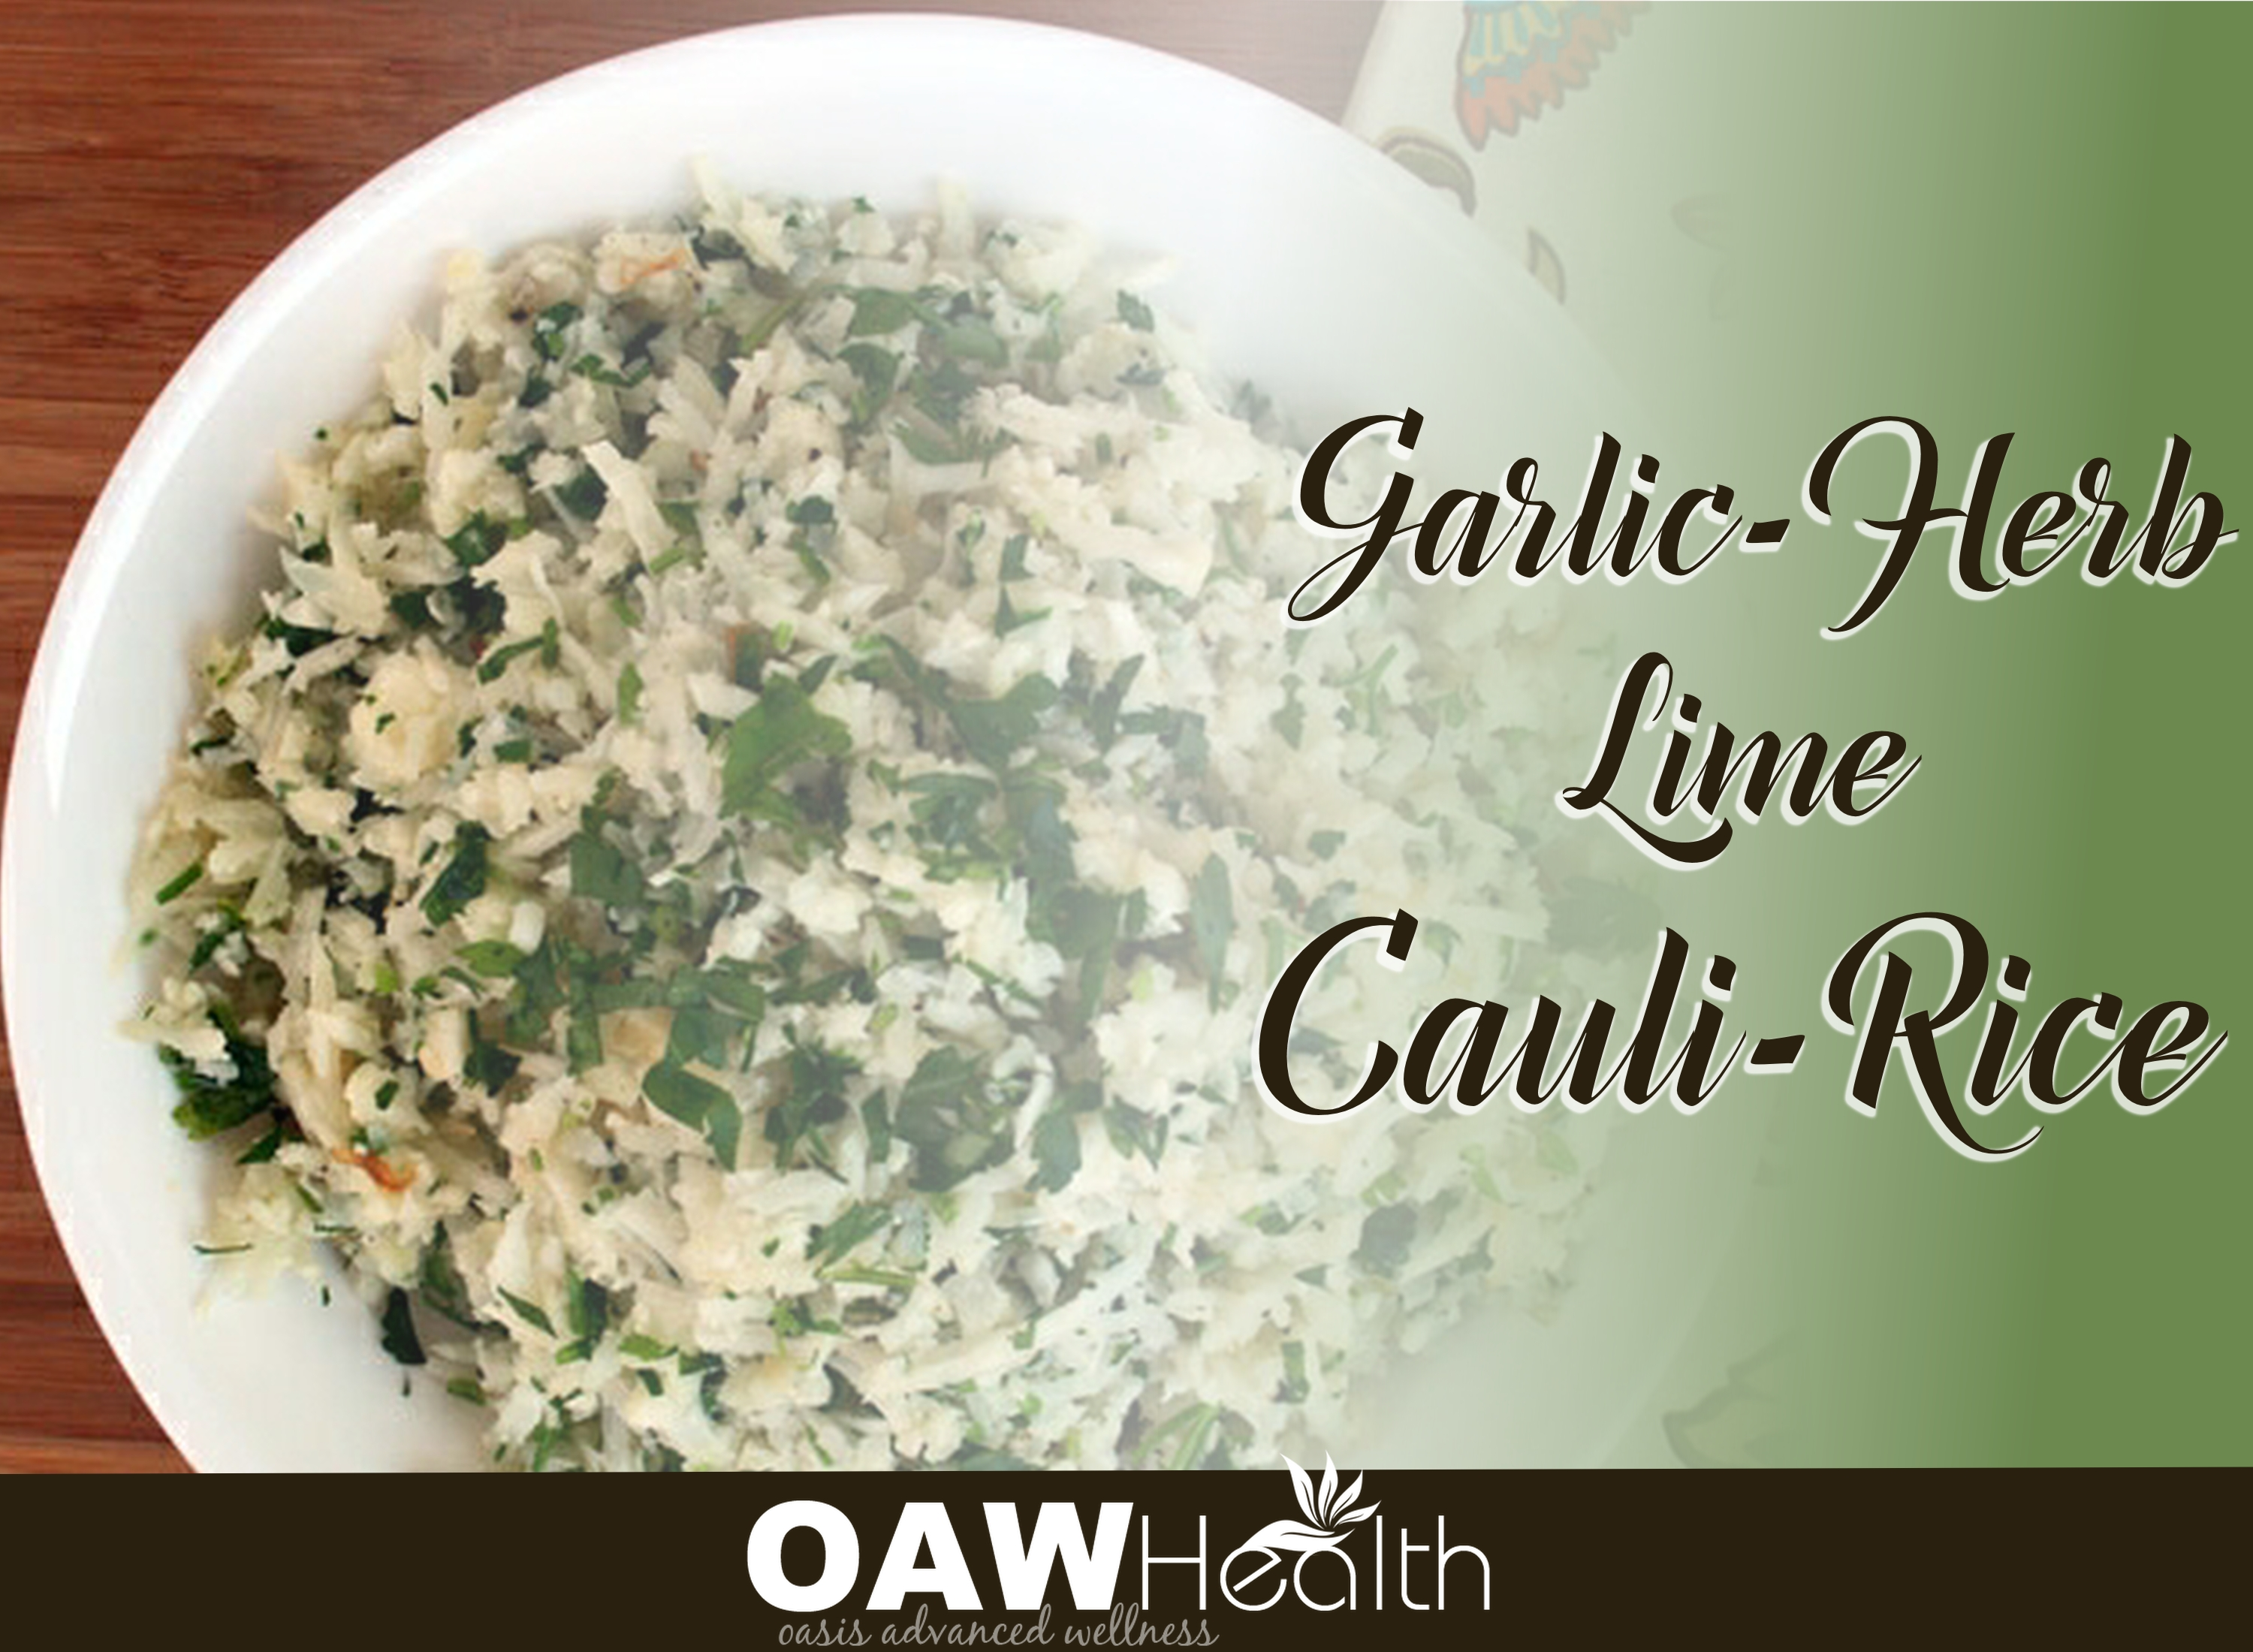 Garlic-Herb-Lime Cauli-Rice